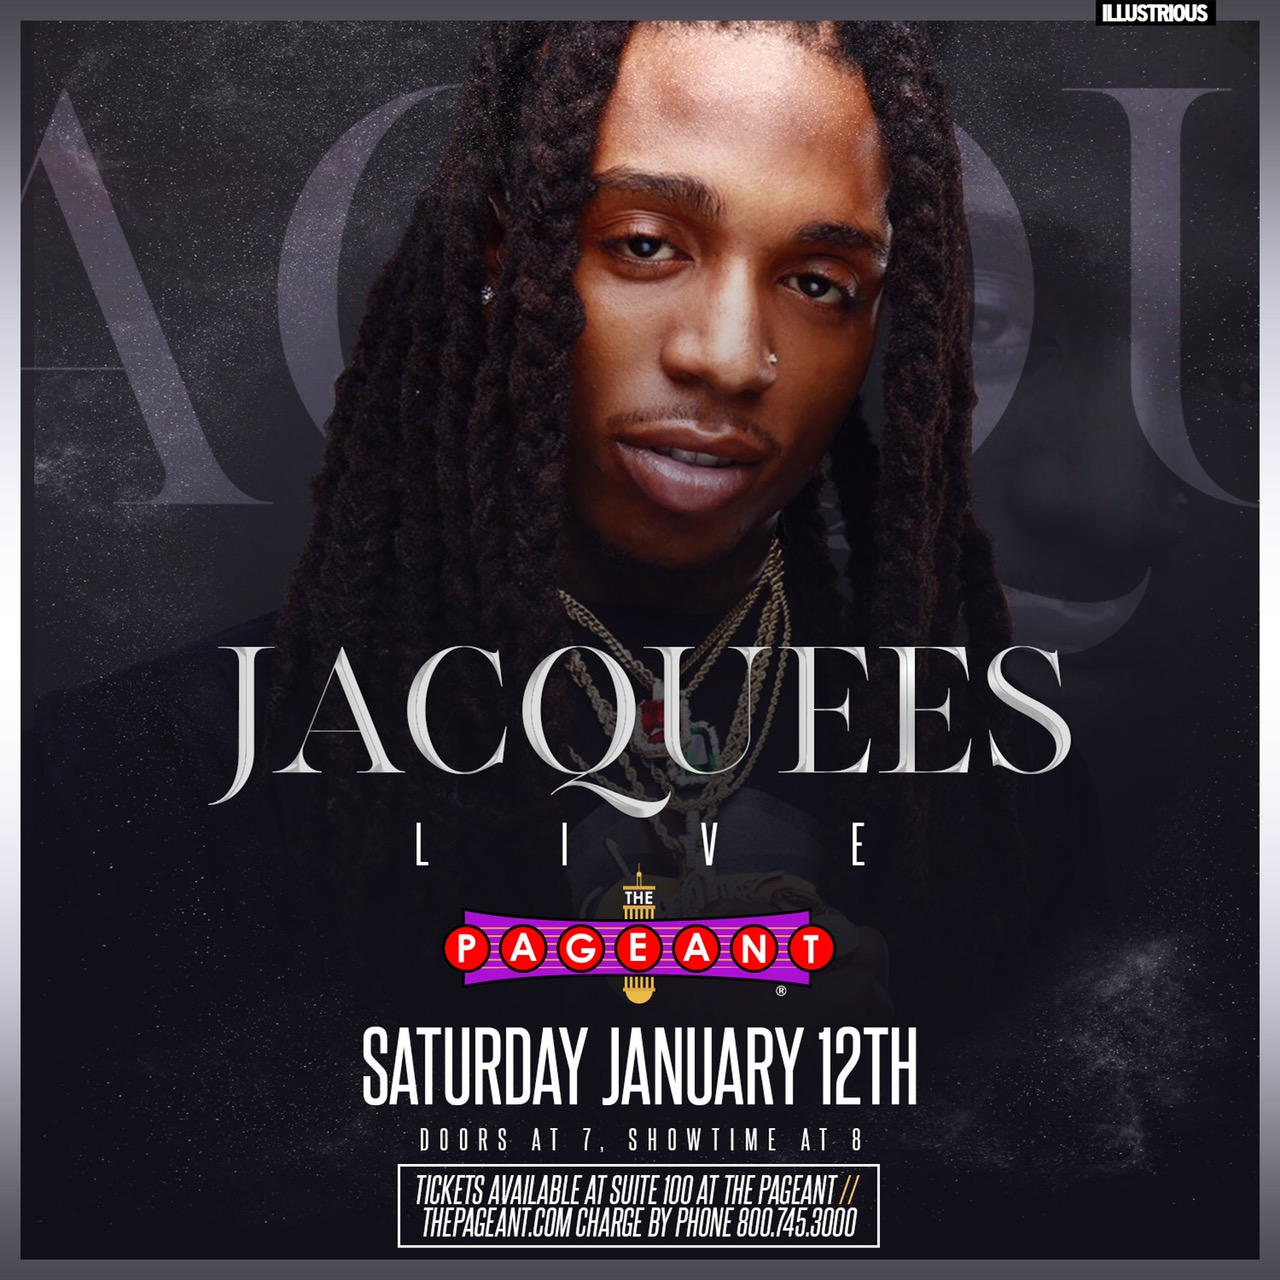 Jacquees in St. Louis 2019